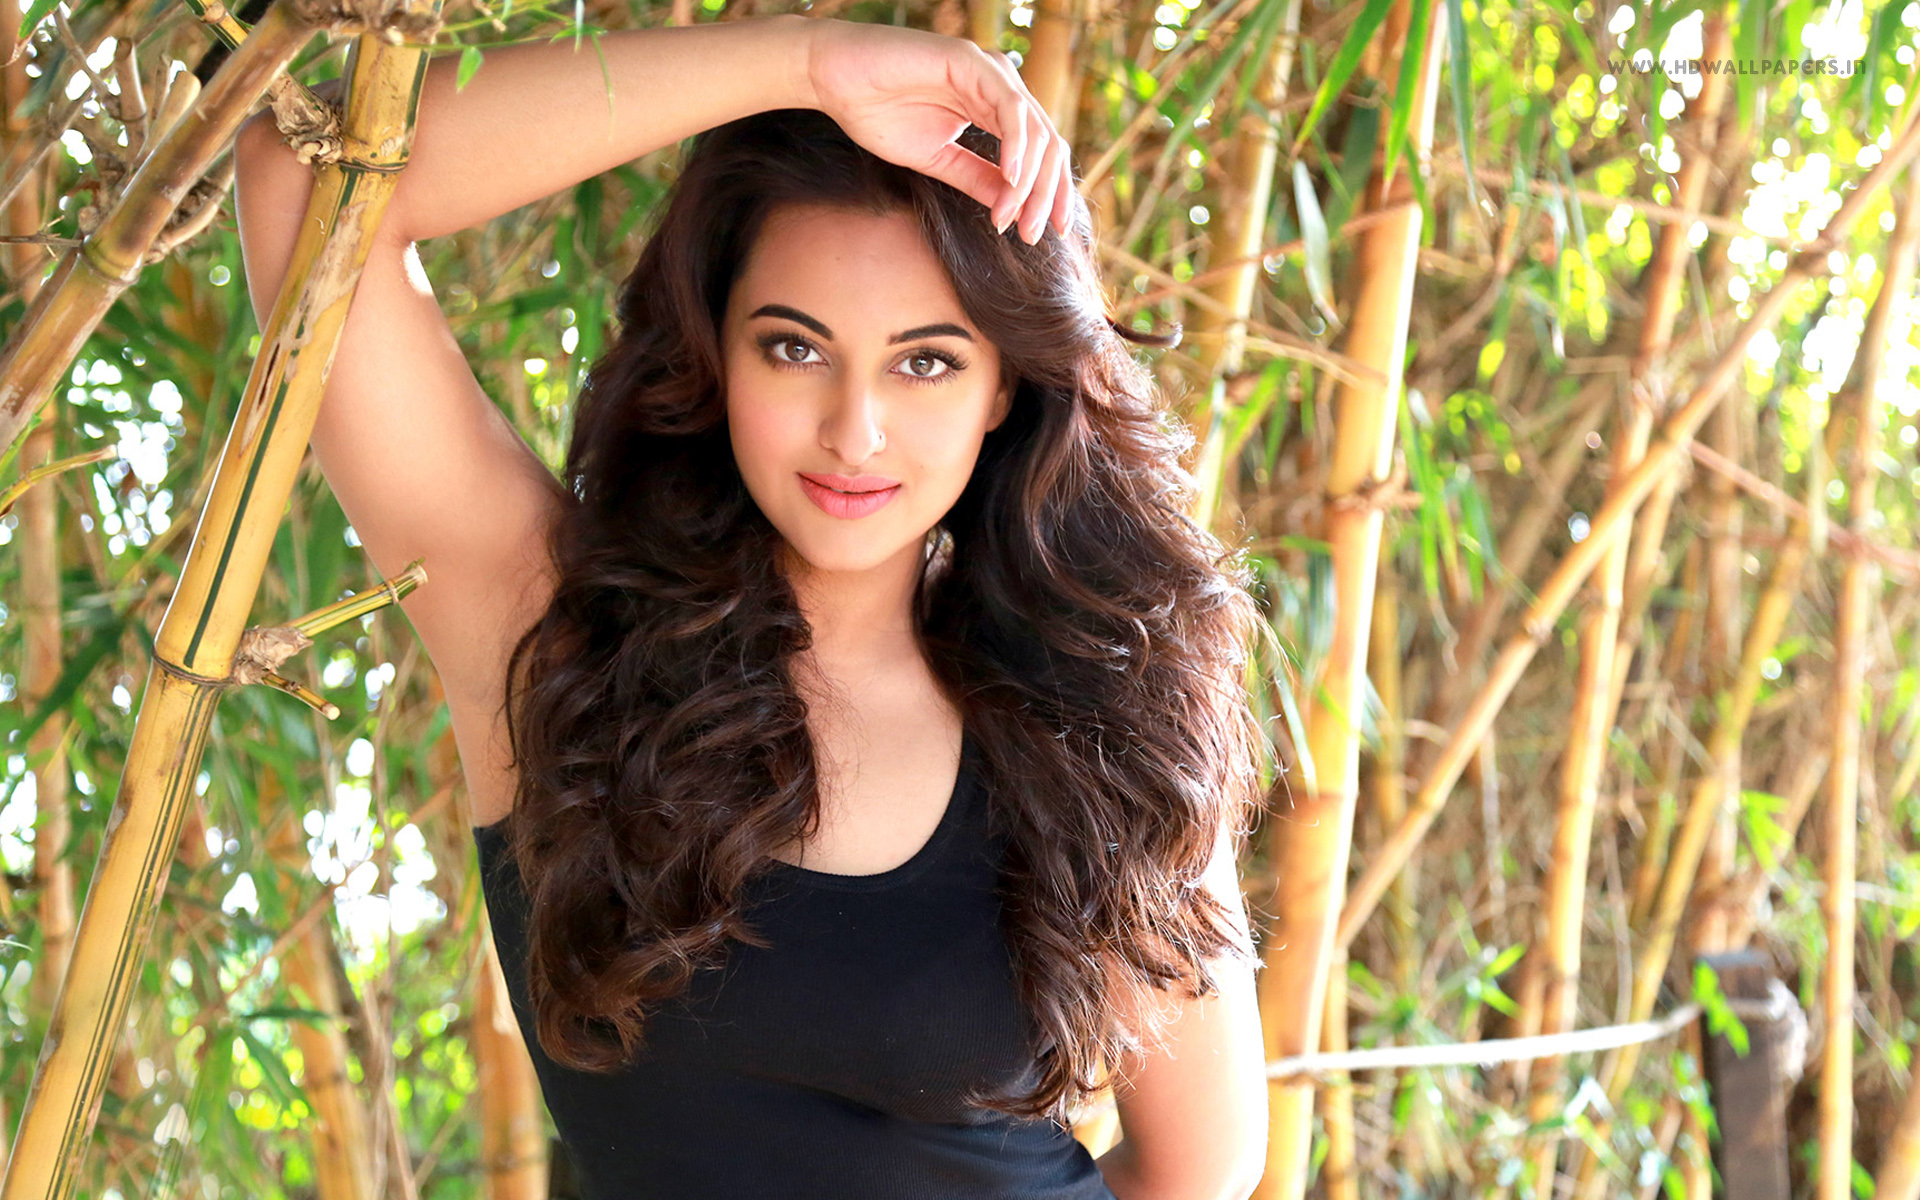 The Best Wallpaper Ever For Iphone Sexiest Sonakshi Sinha Hot Hd Photos Amp Wallpapers High